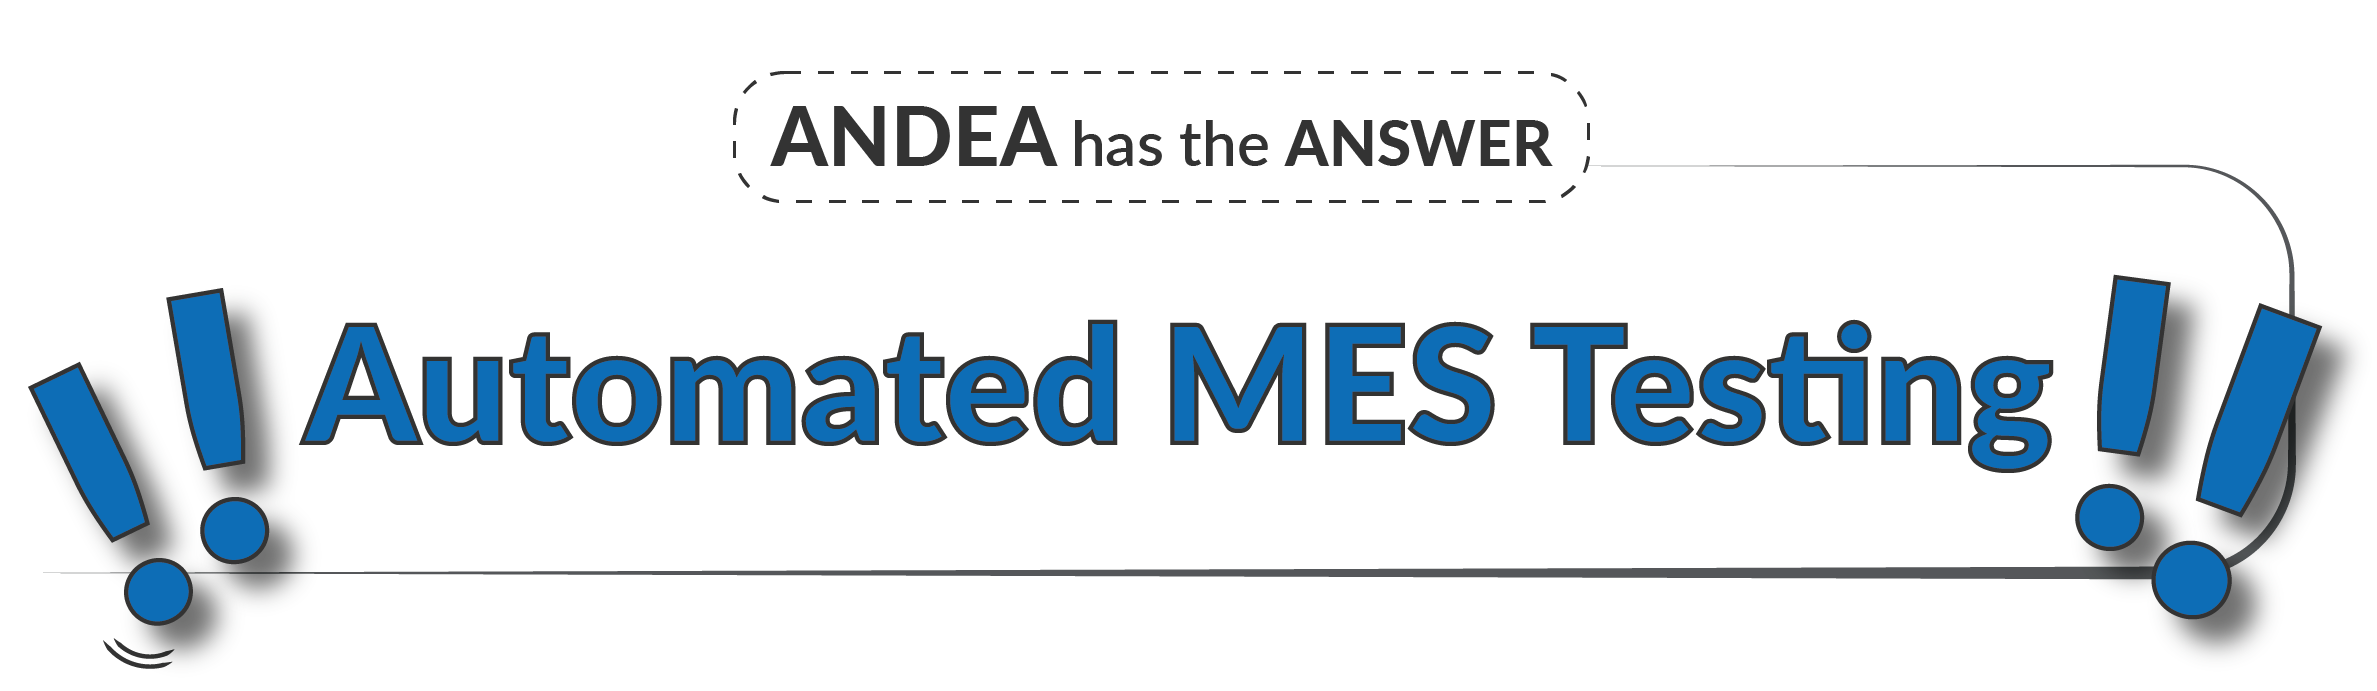 Andea_Automated Testing_leaflet-08.png